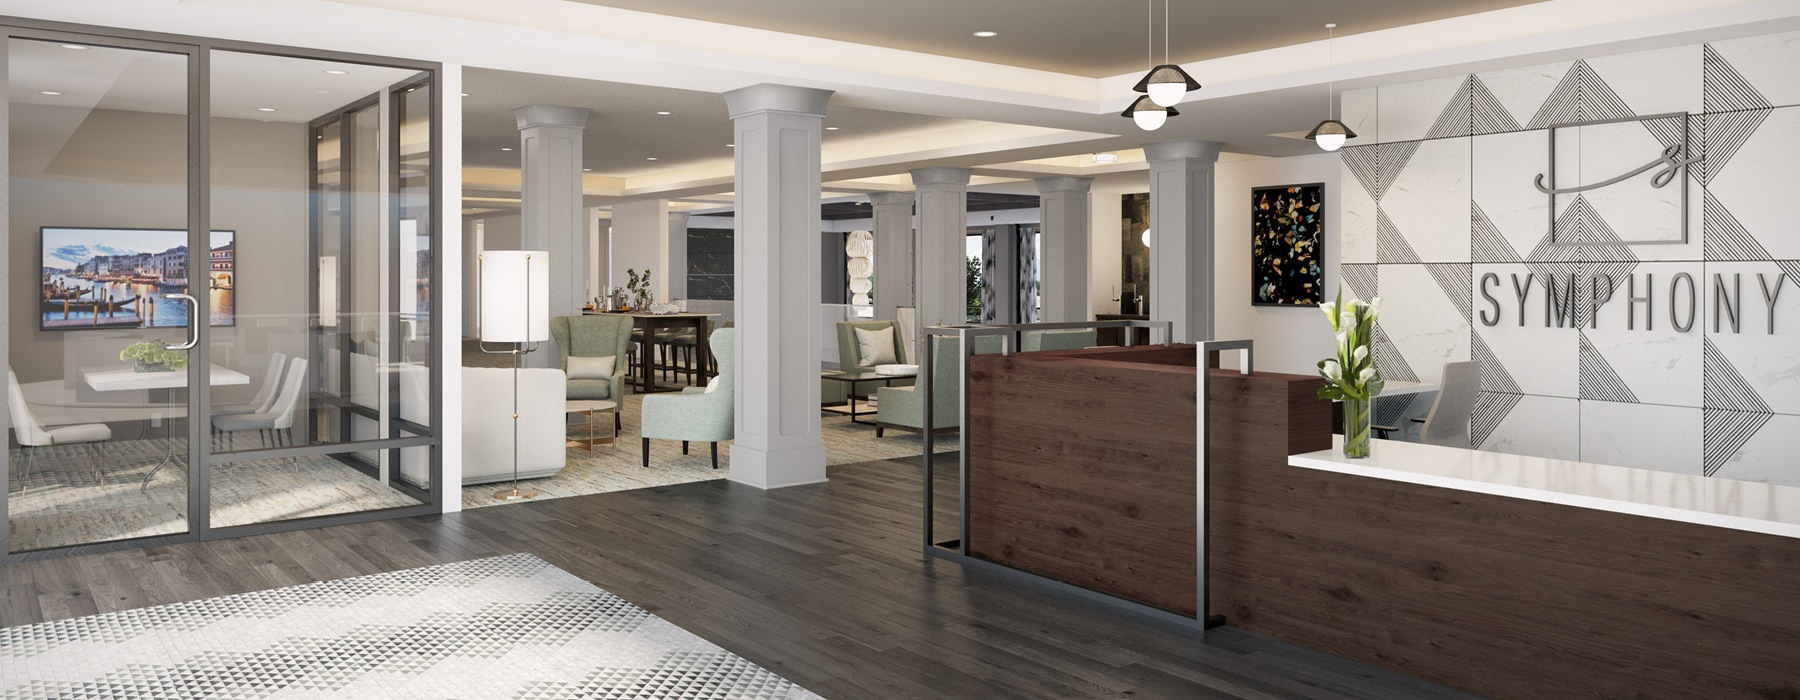 open lobby and leasing center rendering at Symphony at Suwanee Creek